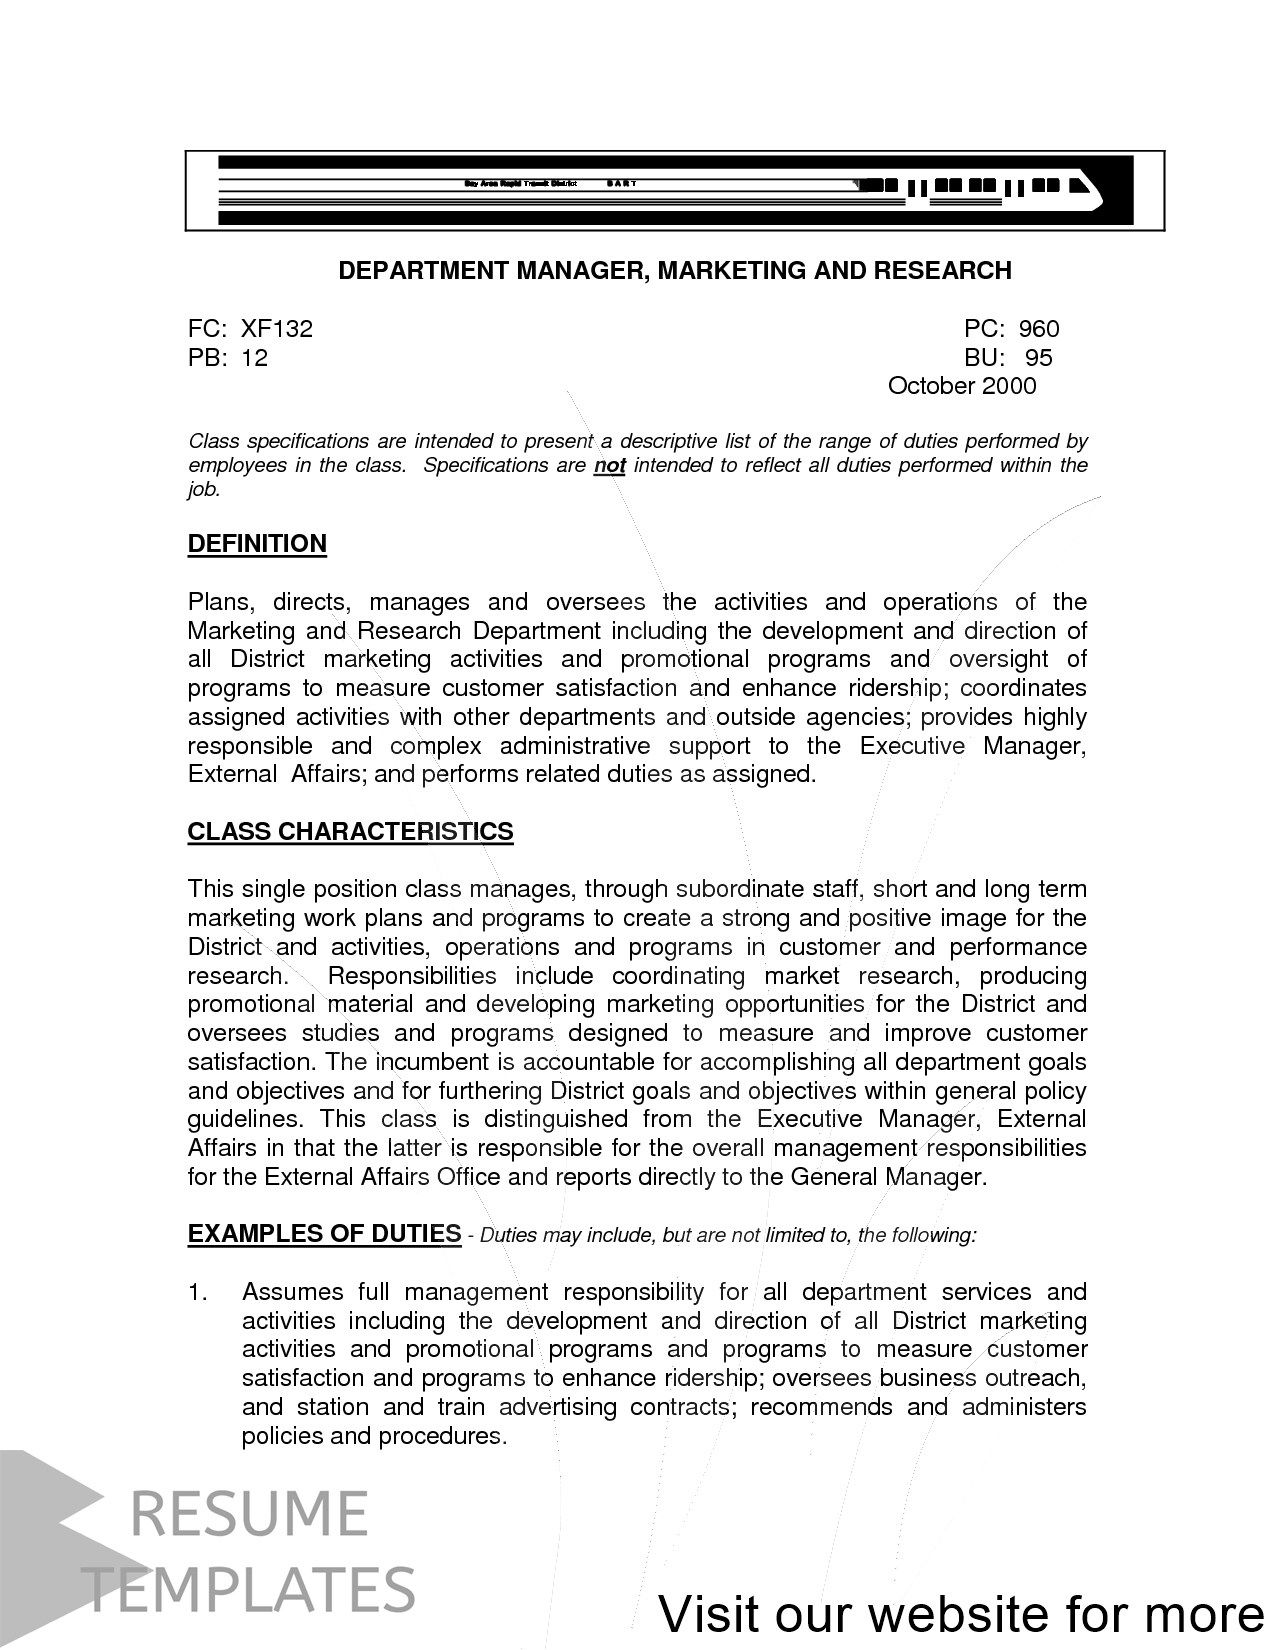 resume template free layout in 2020 General objective